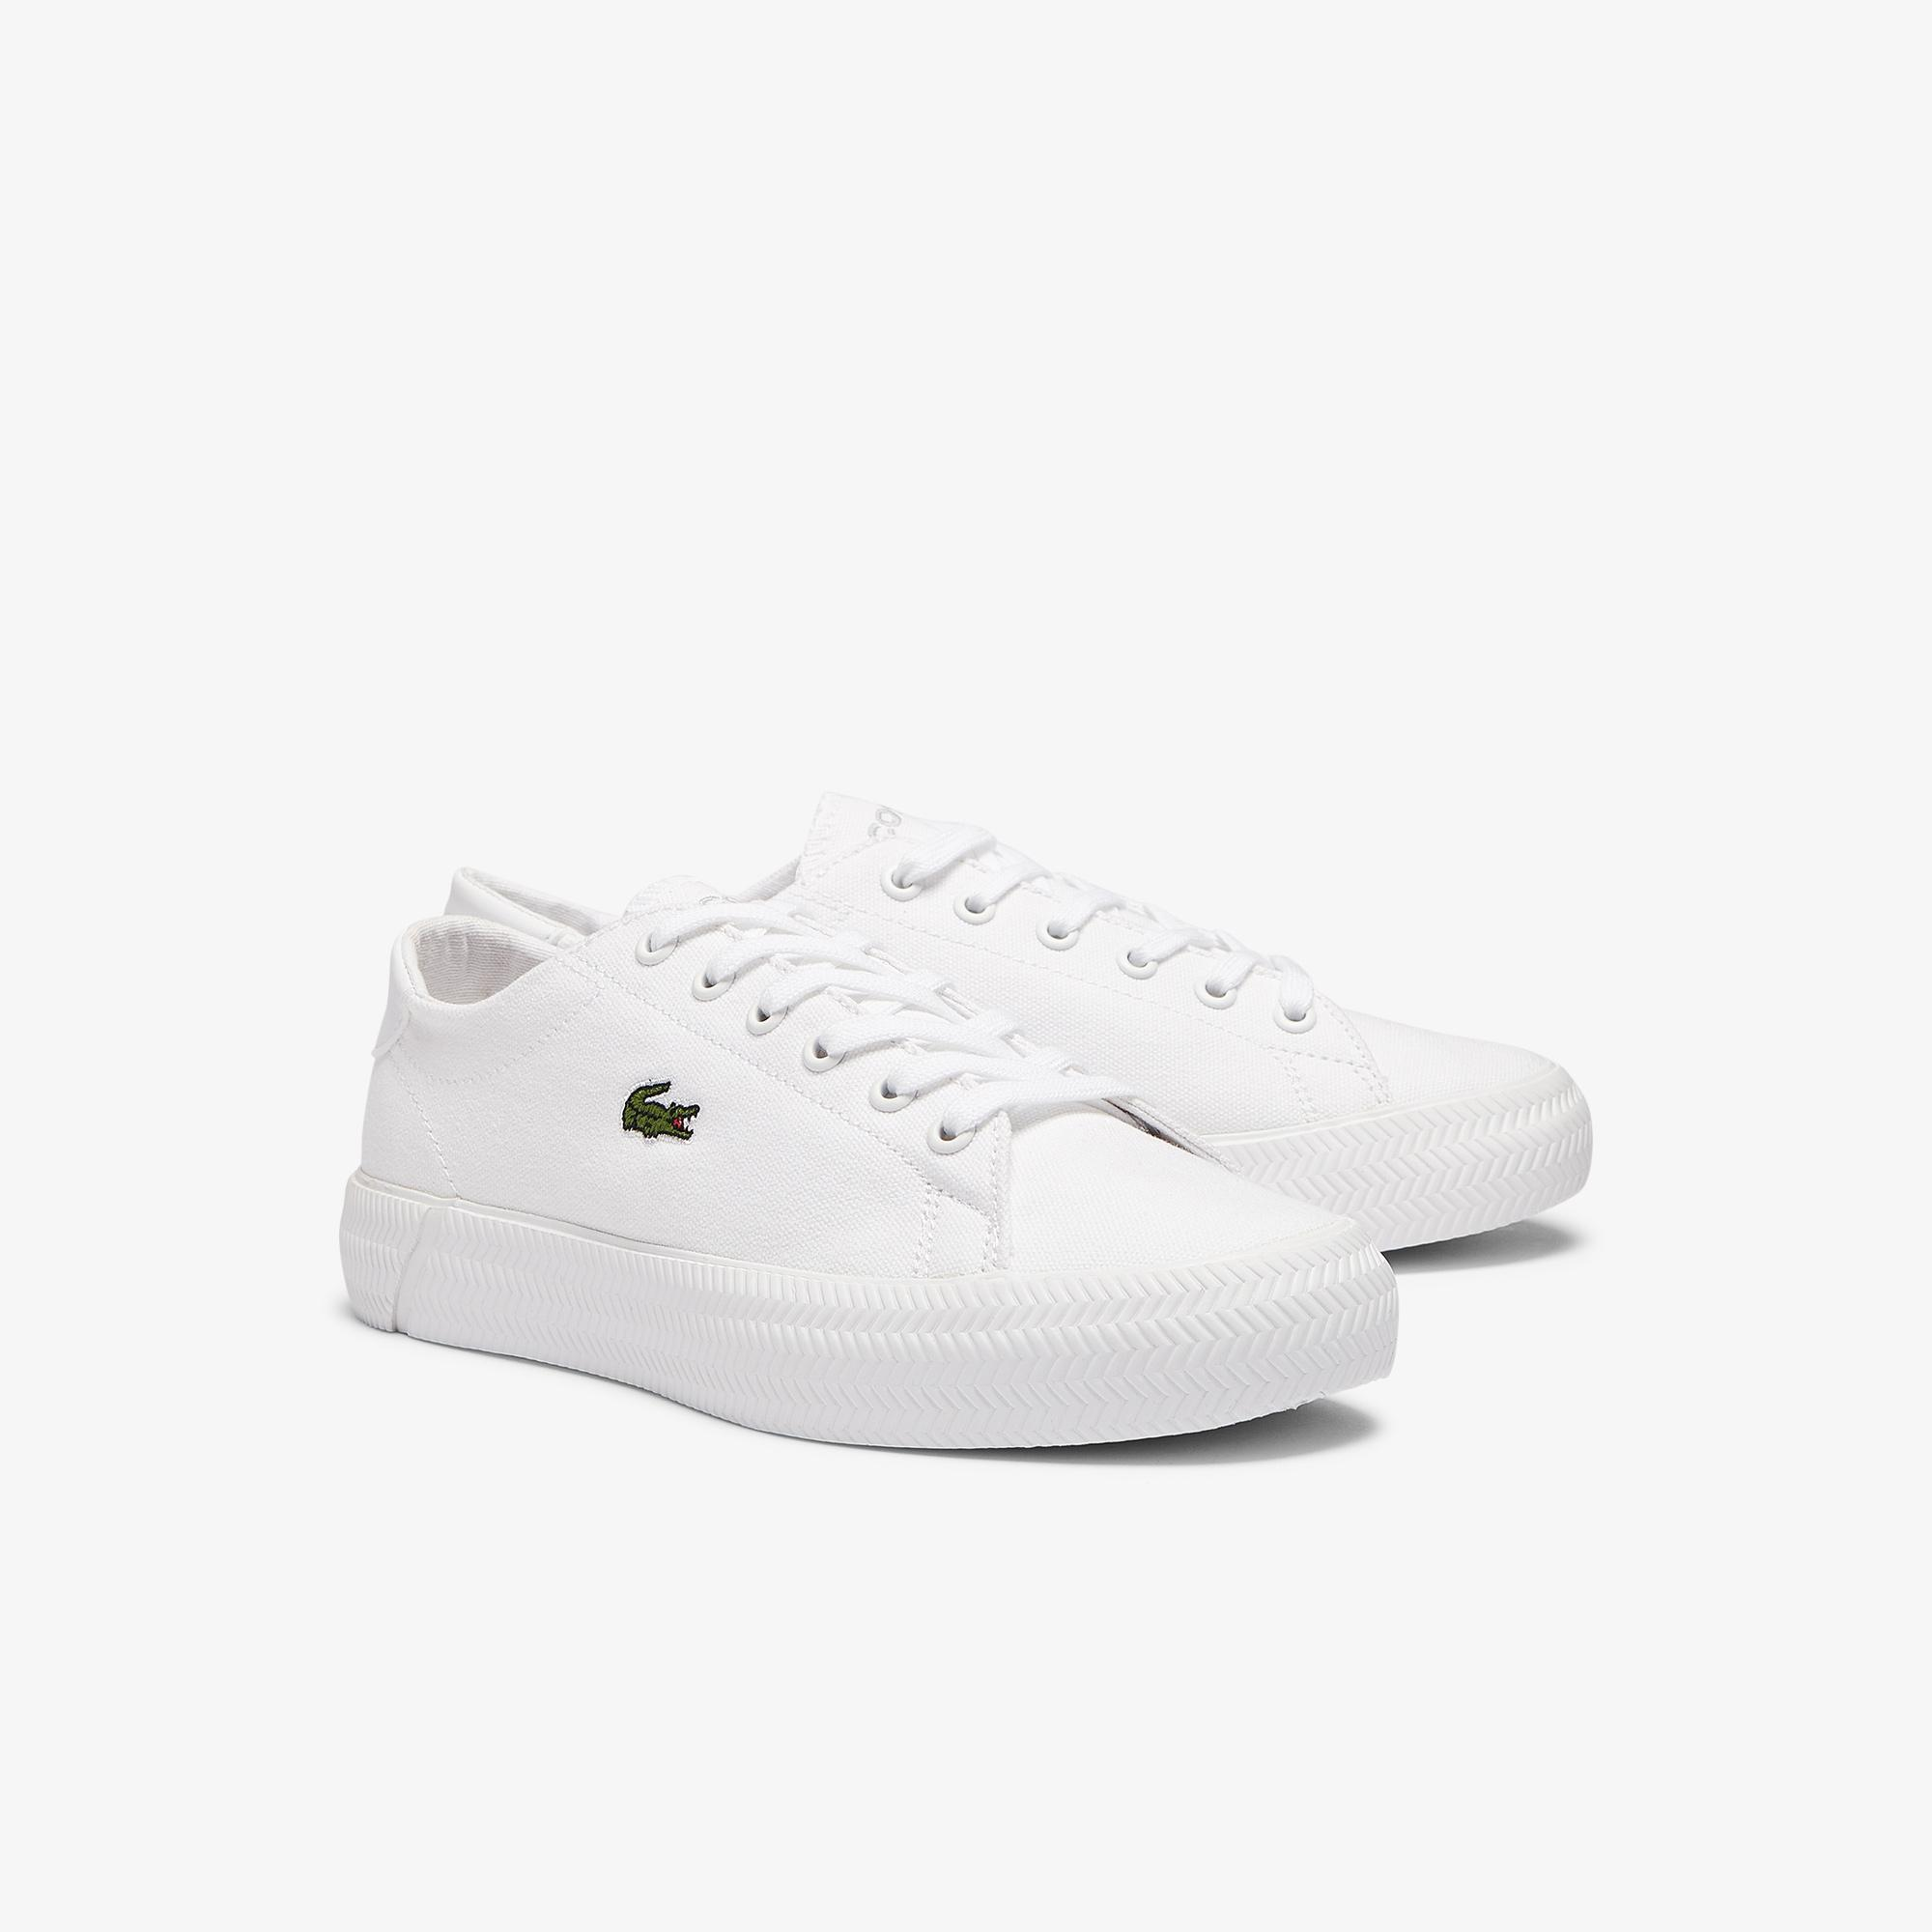 Lacoste Women's Grıpshot Bl 21 2 Cfa Shoes